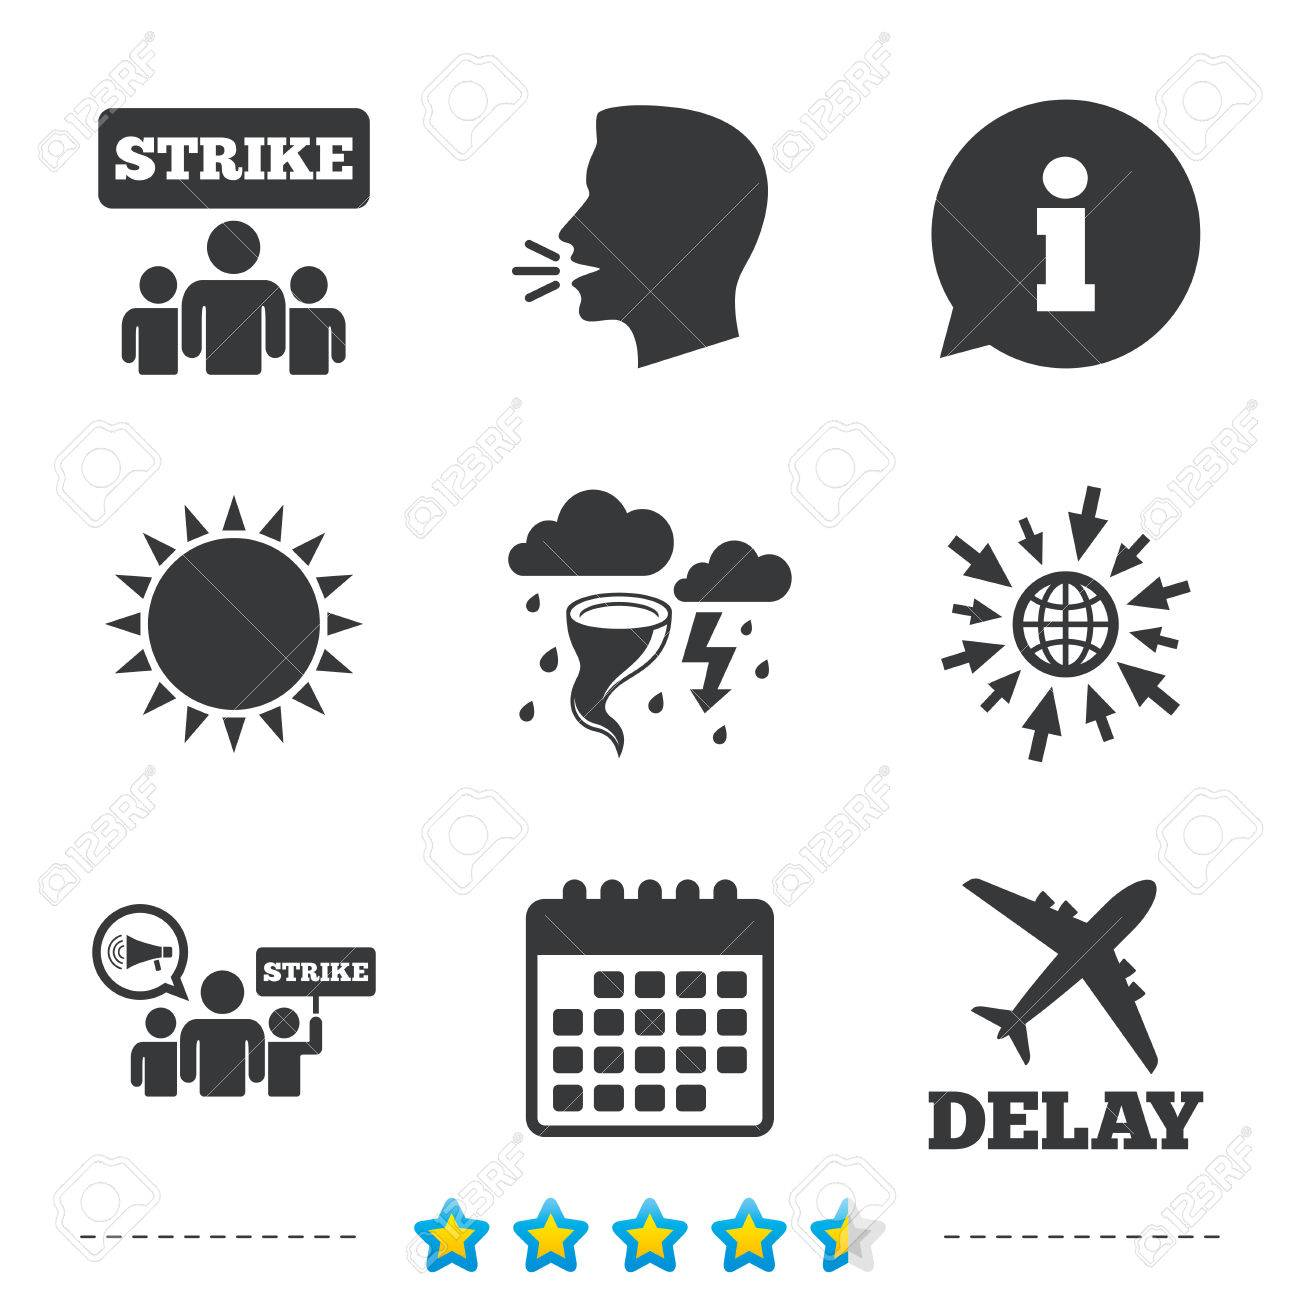 Strike icon  Storm bad weather and group of people signs  Delayed